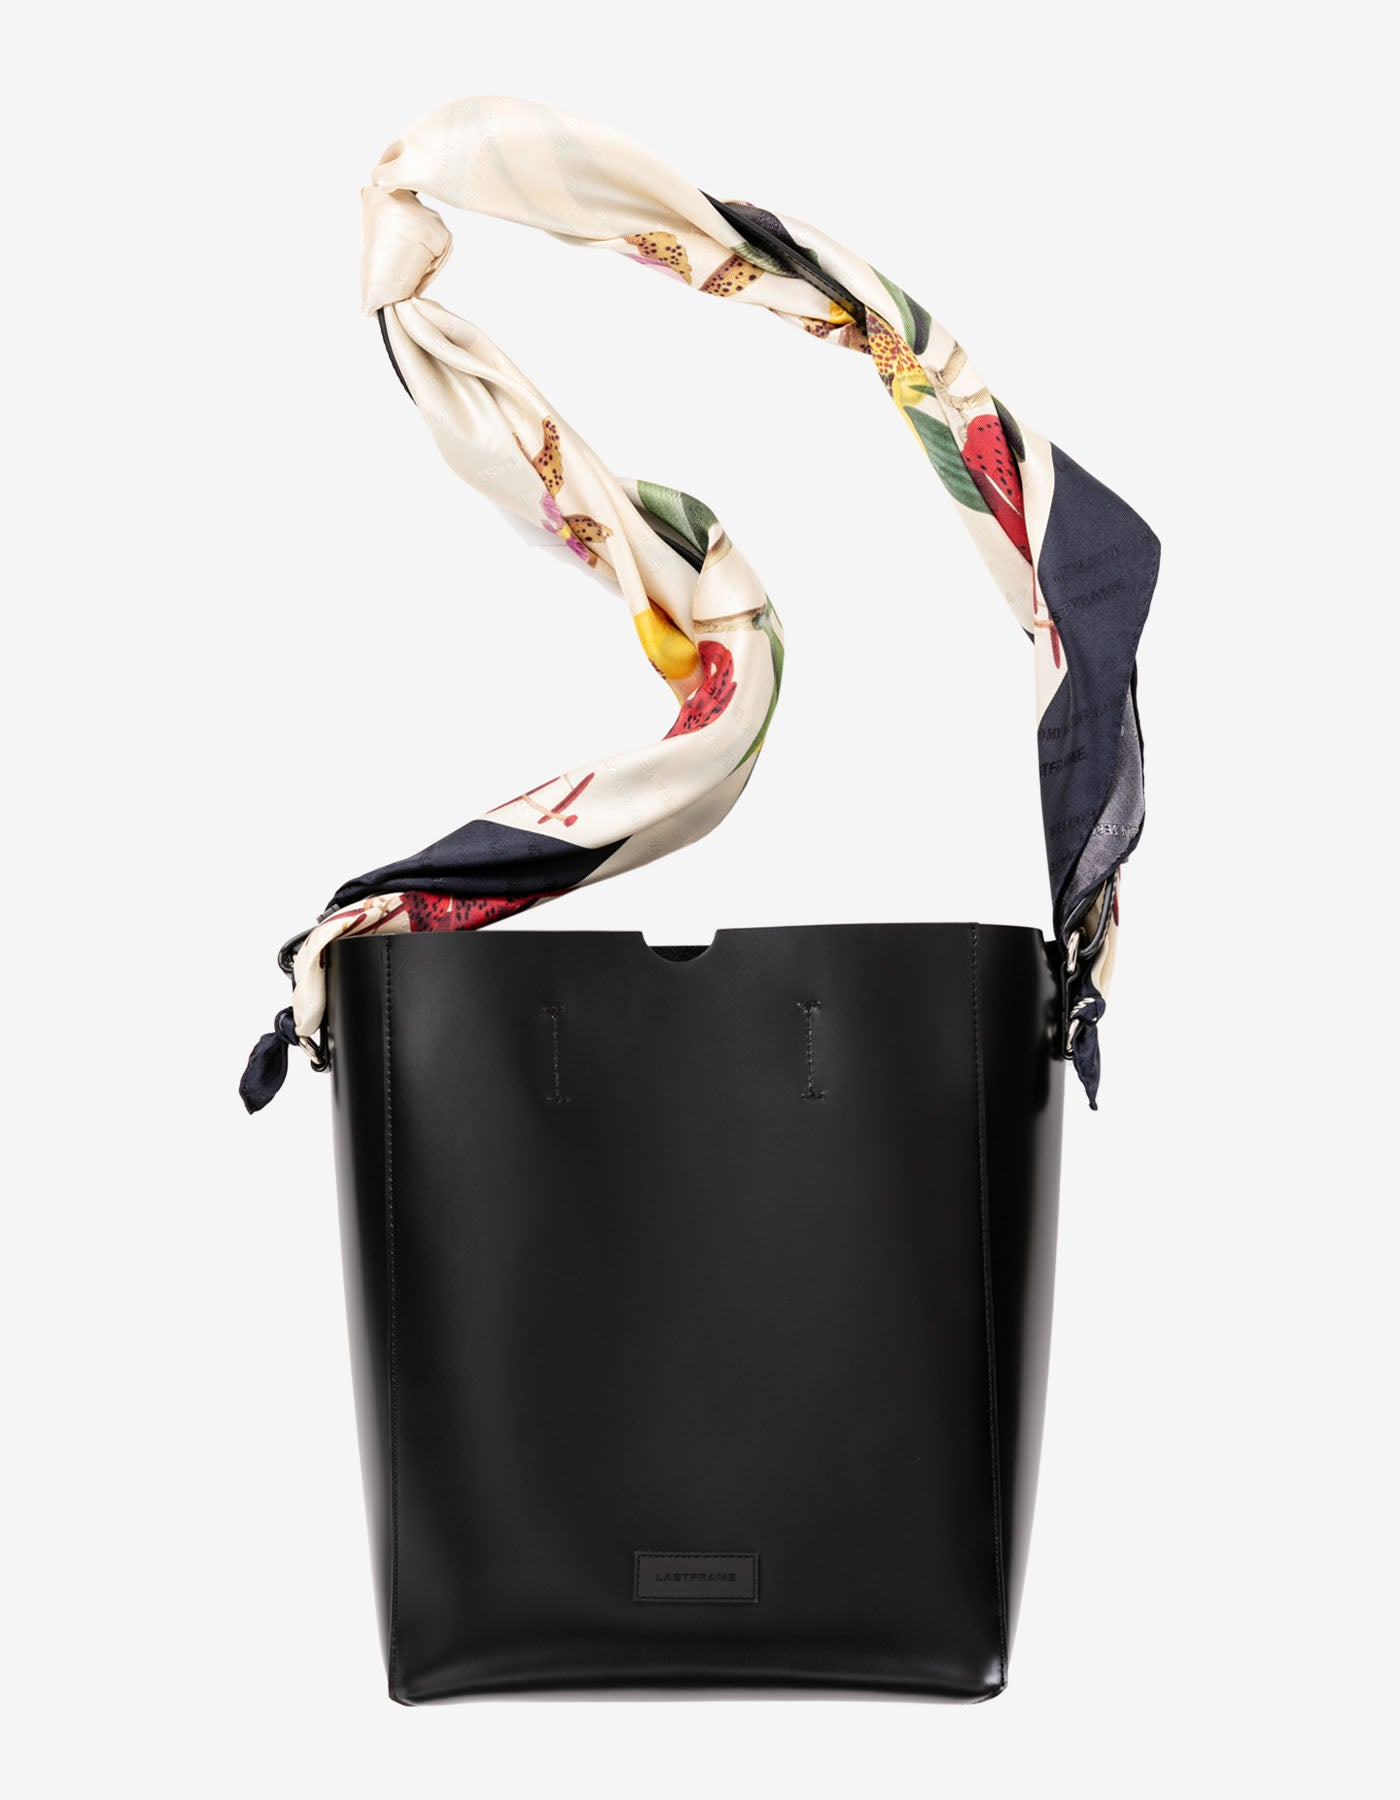 LEATHER TOTE BAG + GOLDFISH SCARF